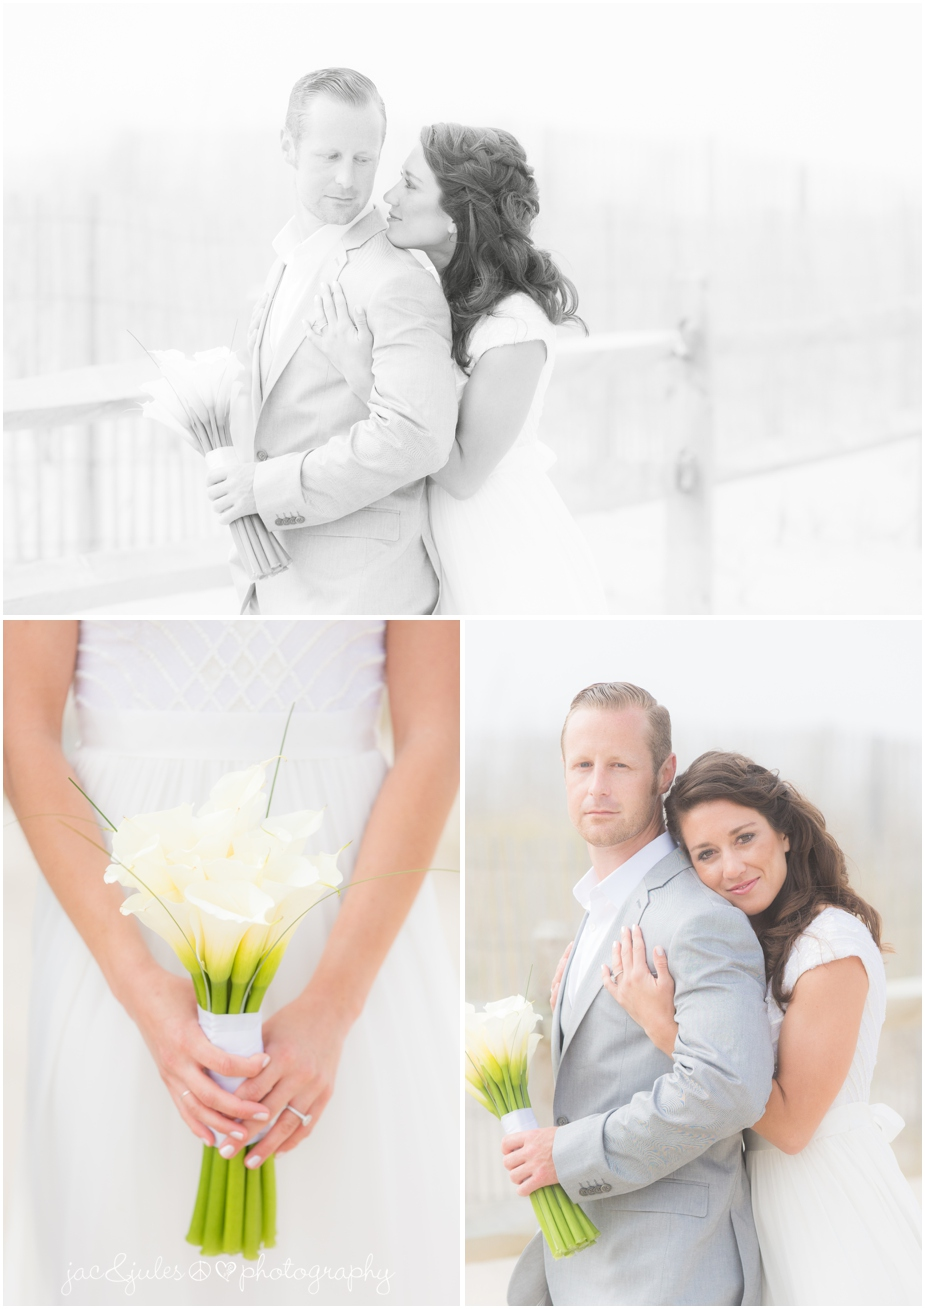 LBI wedding photographer jacnjules photograph bride and groom on the beach